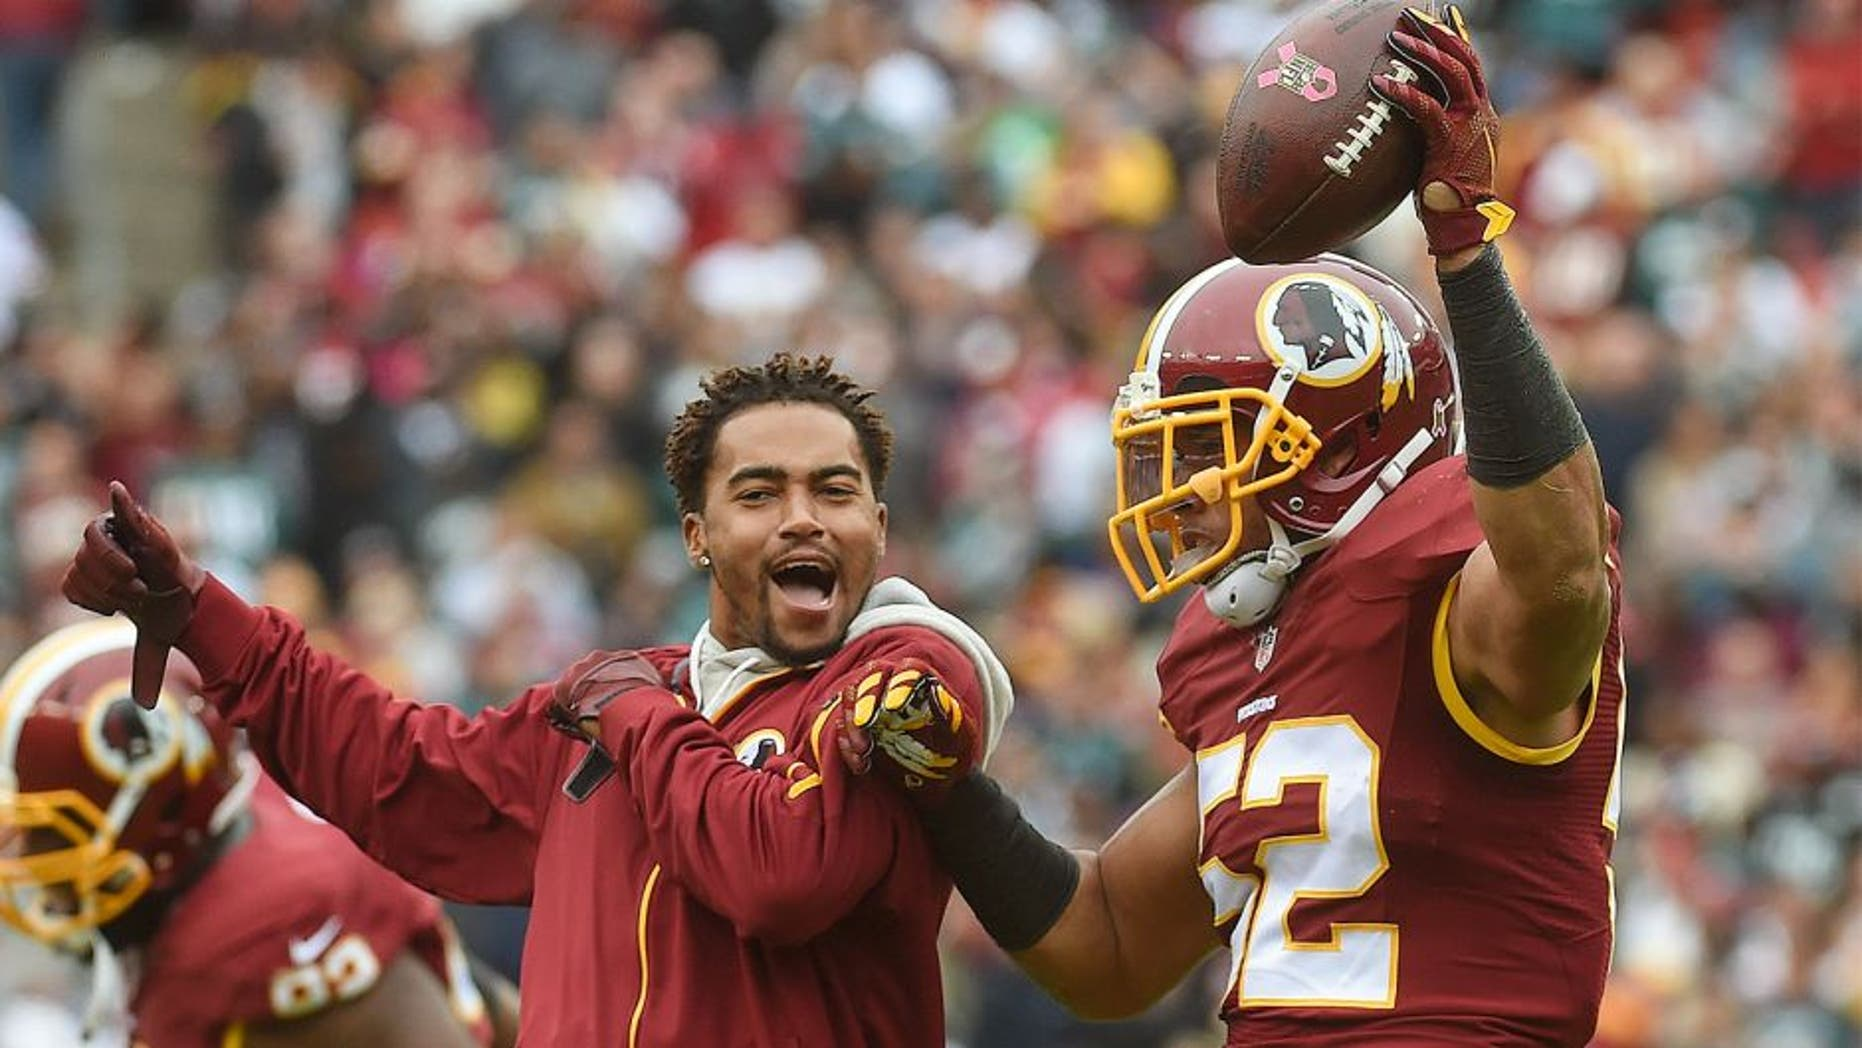 LANDOVER, MD- OCTOBER 4: CAPTION CORRECTION Washington Redskins wide receiver DeSean Jackson (11), left, joins Washington Redskins inside linebacker Keenan Robinson (52) as he celebrates his second-quarter fumble recovery in the game between the Washington Redskins and the Philadelphia Eagles at FedEx Field on Sunday, October 4, 2015. (Photo by Toni L. Sandys/ The Washington Post via Getty Images)